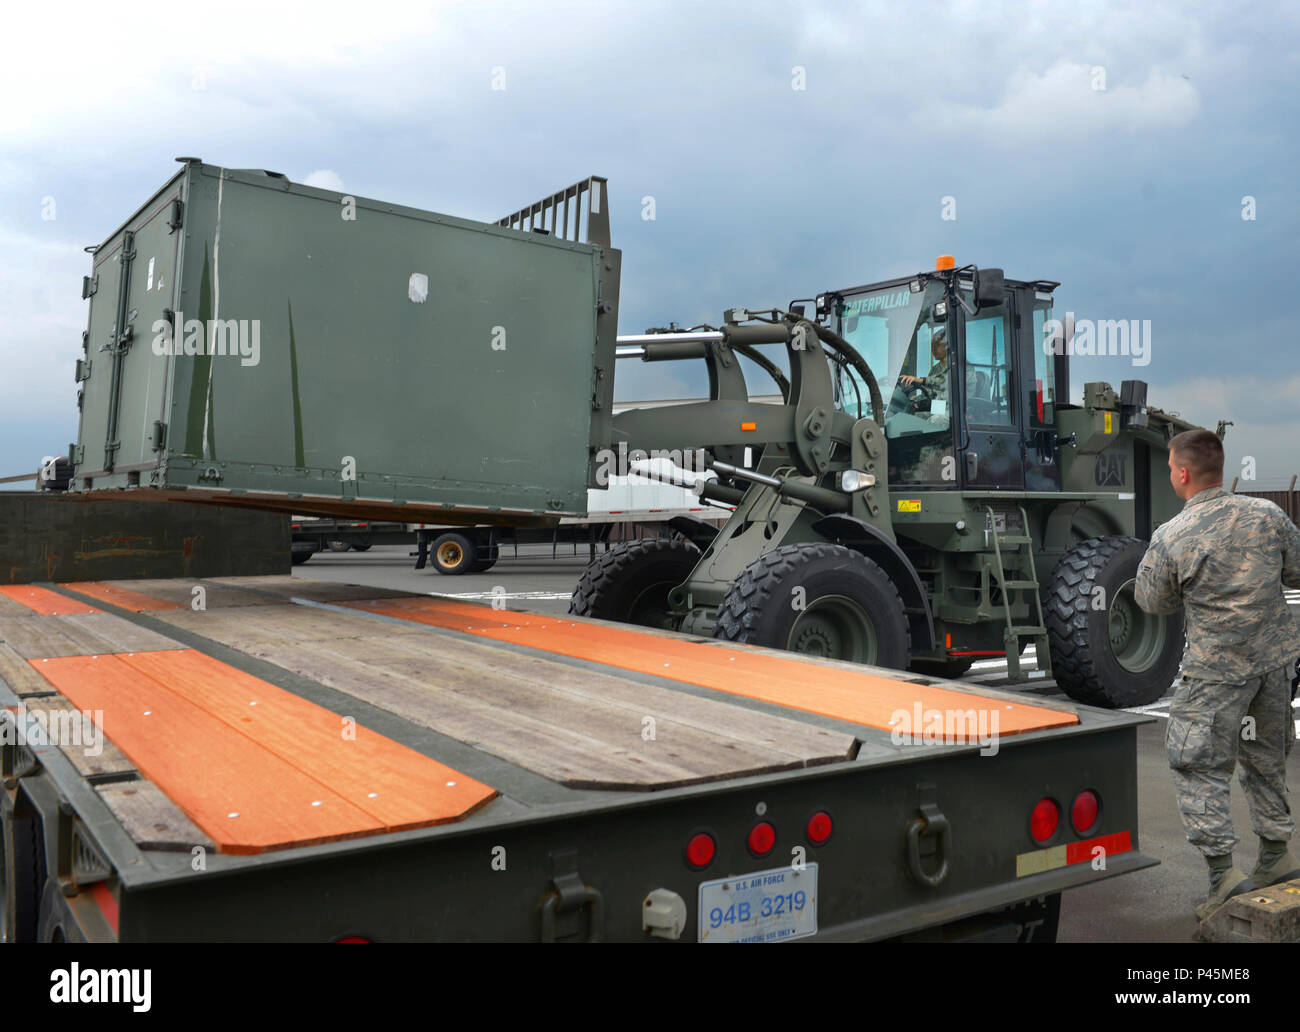 Army Forklift 10k Operator Manual Military Trailer Light Wiring Diagram C1500 4 3l V6